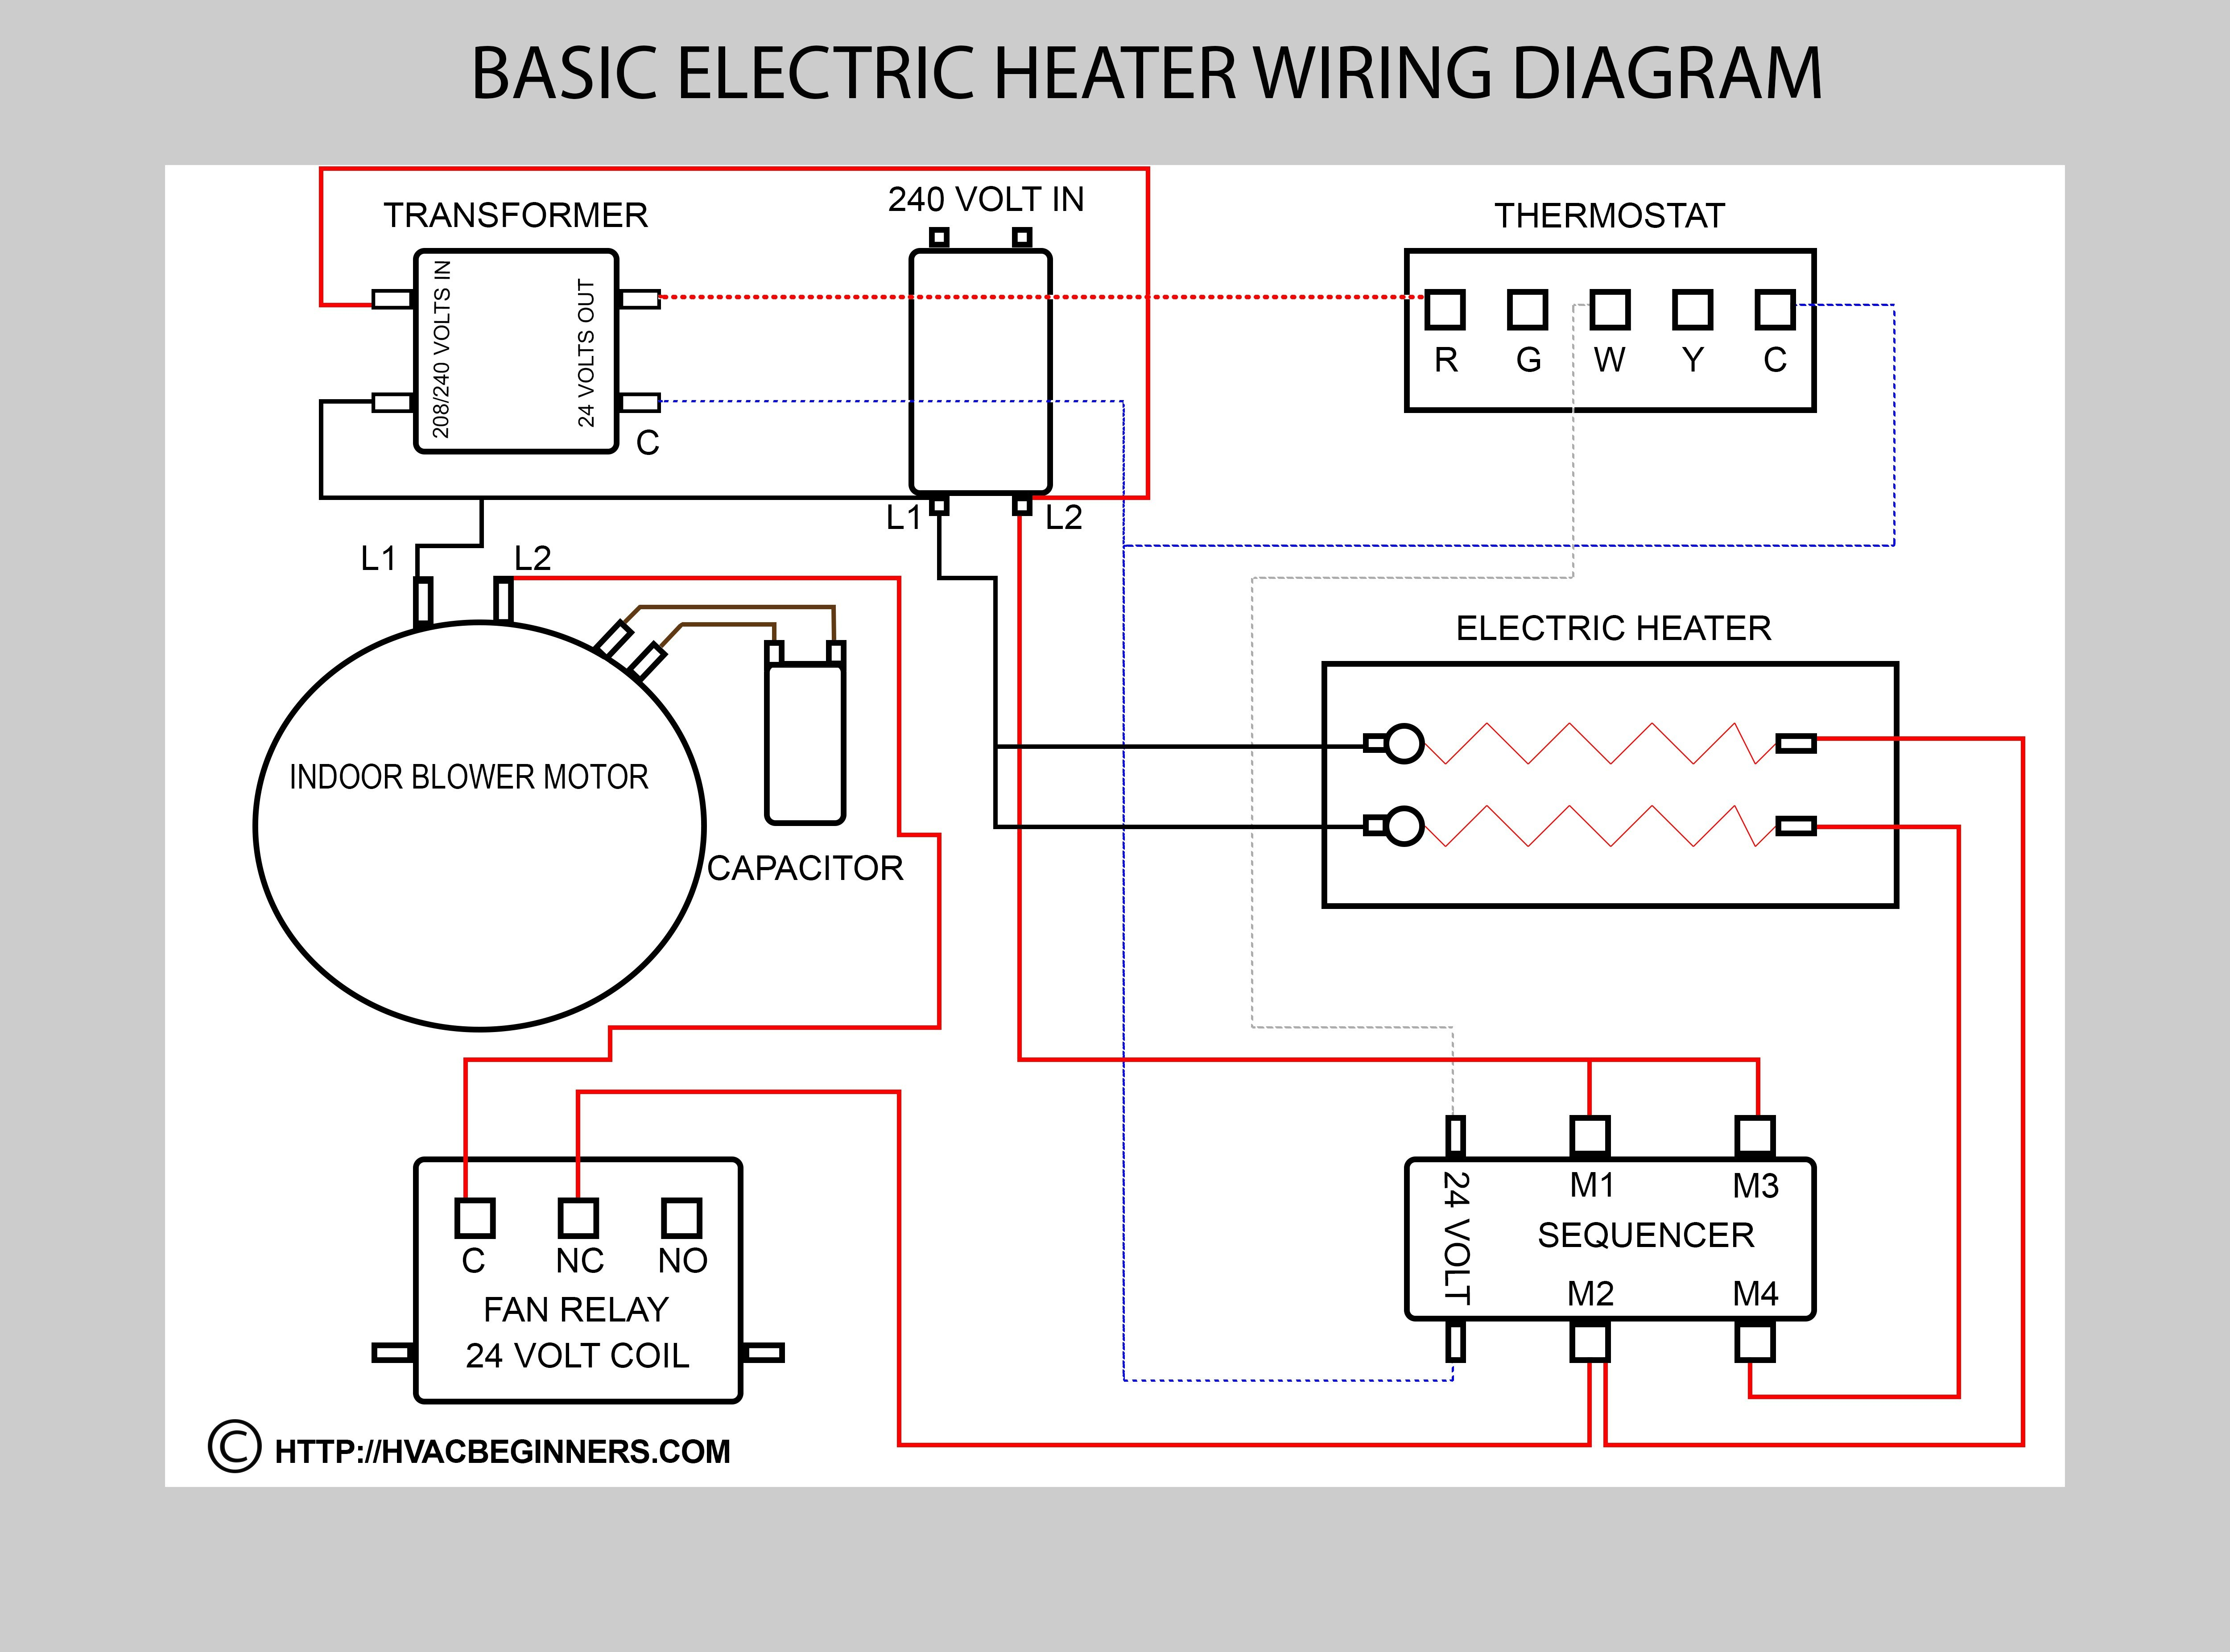 Basic Wiring Diagrams Best Nice Lux 1500 thermostat Wiring Diagram Gallery Electrical and